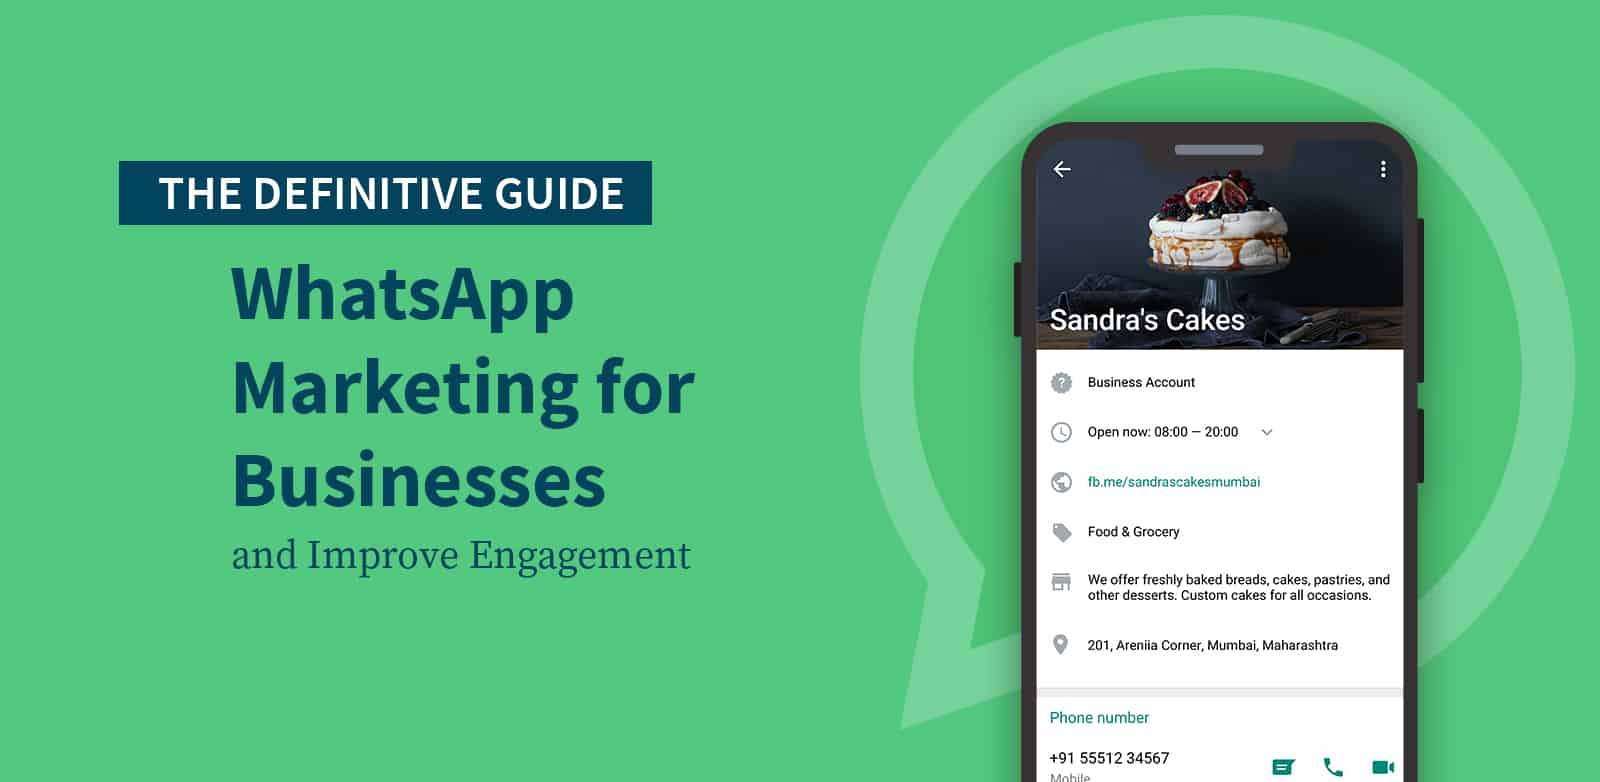 WhatsApp Marketing for Businesses: The Definitive Guide [2019]